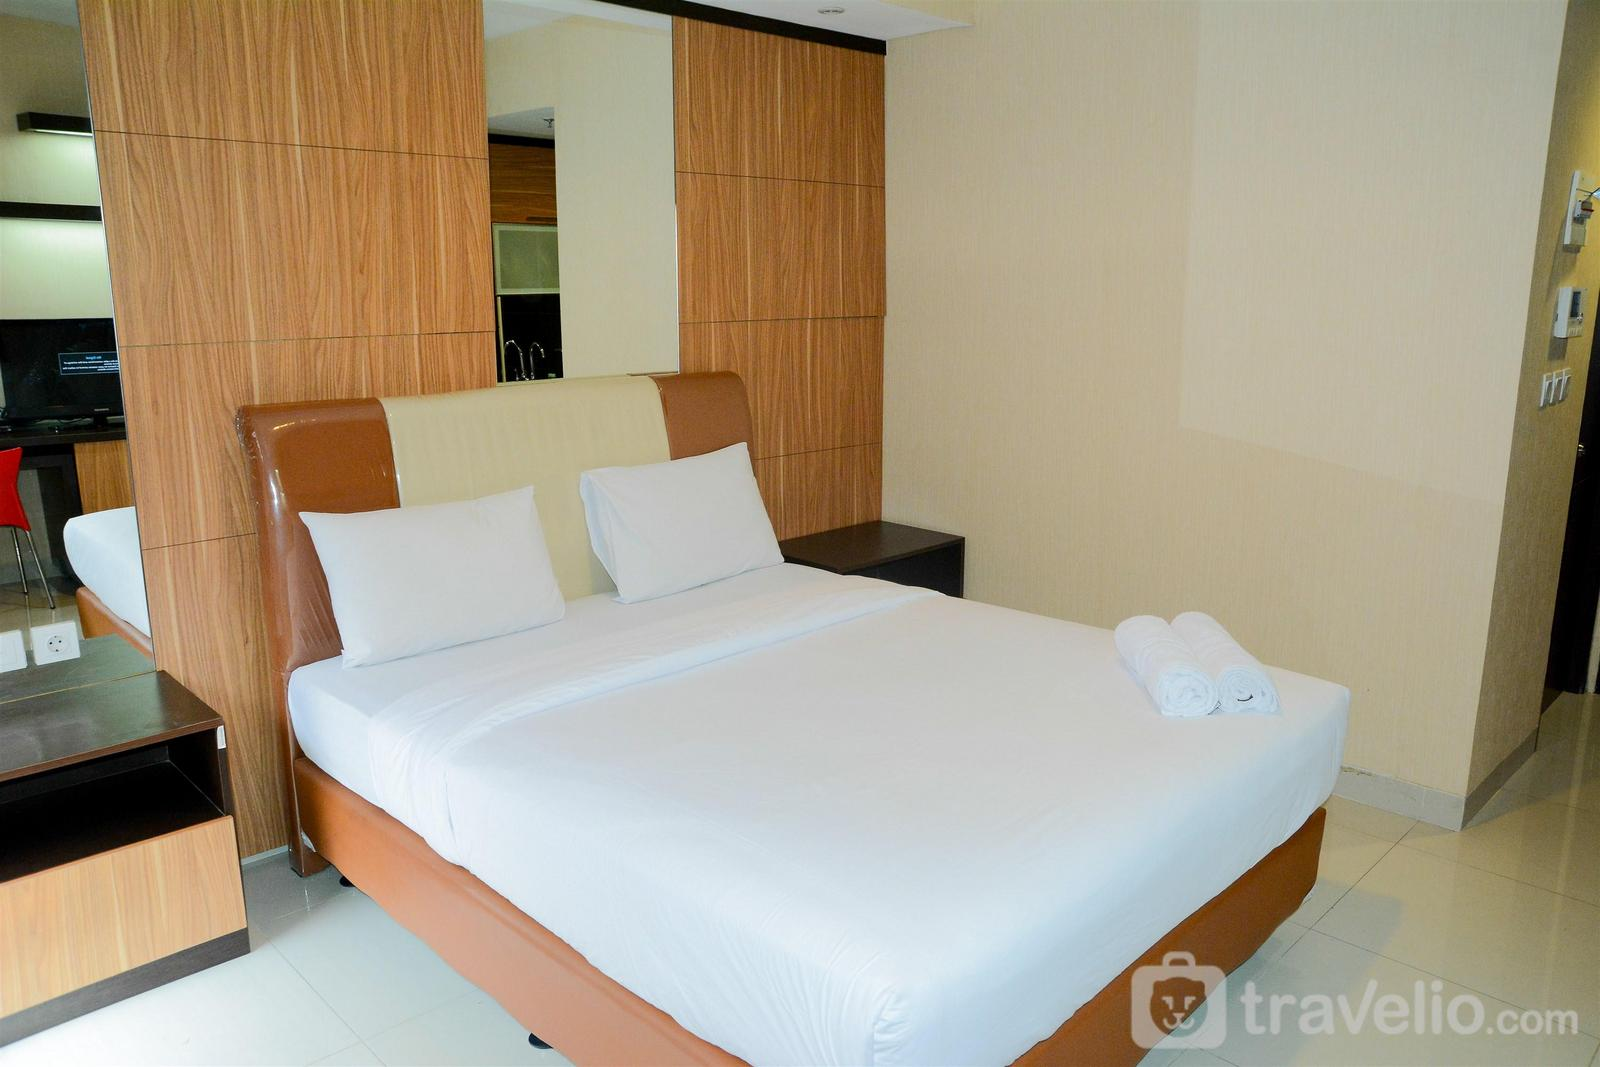 Atria Residences Gading Serpong - Exclusive Studio Room Atria Residence Apartment By Travelio